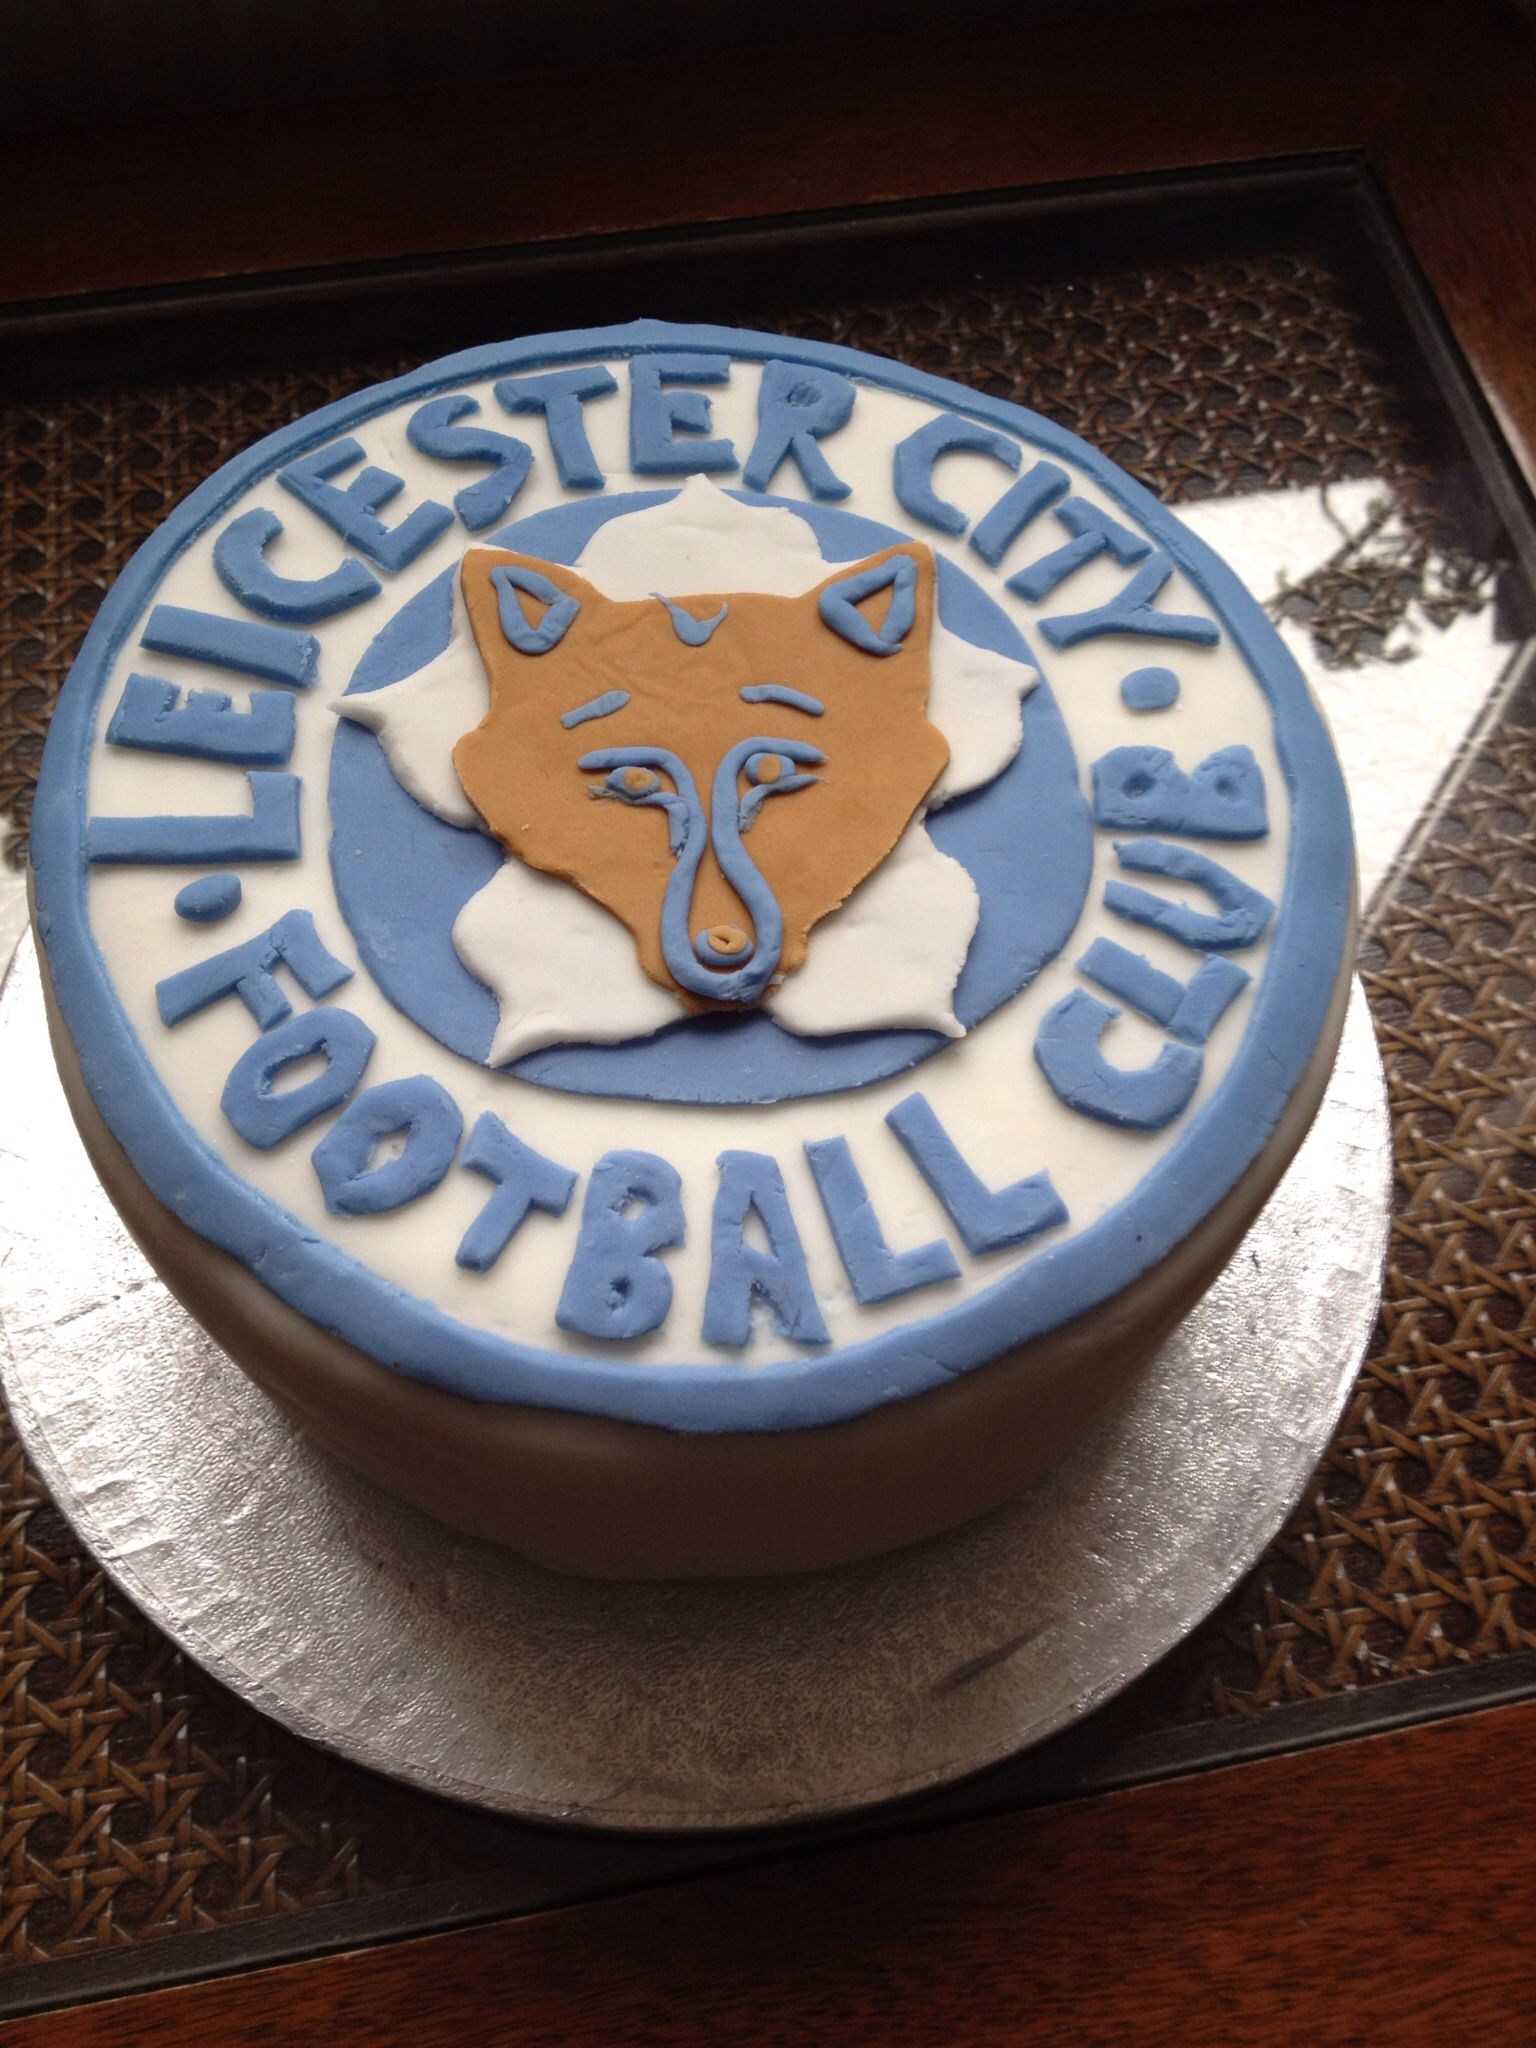 Leicester City Football Shirt Cake